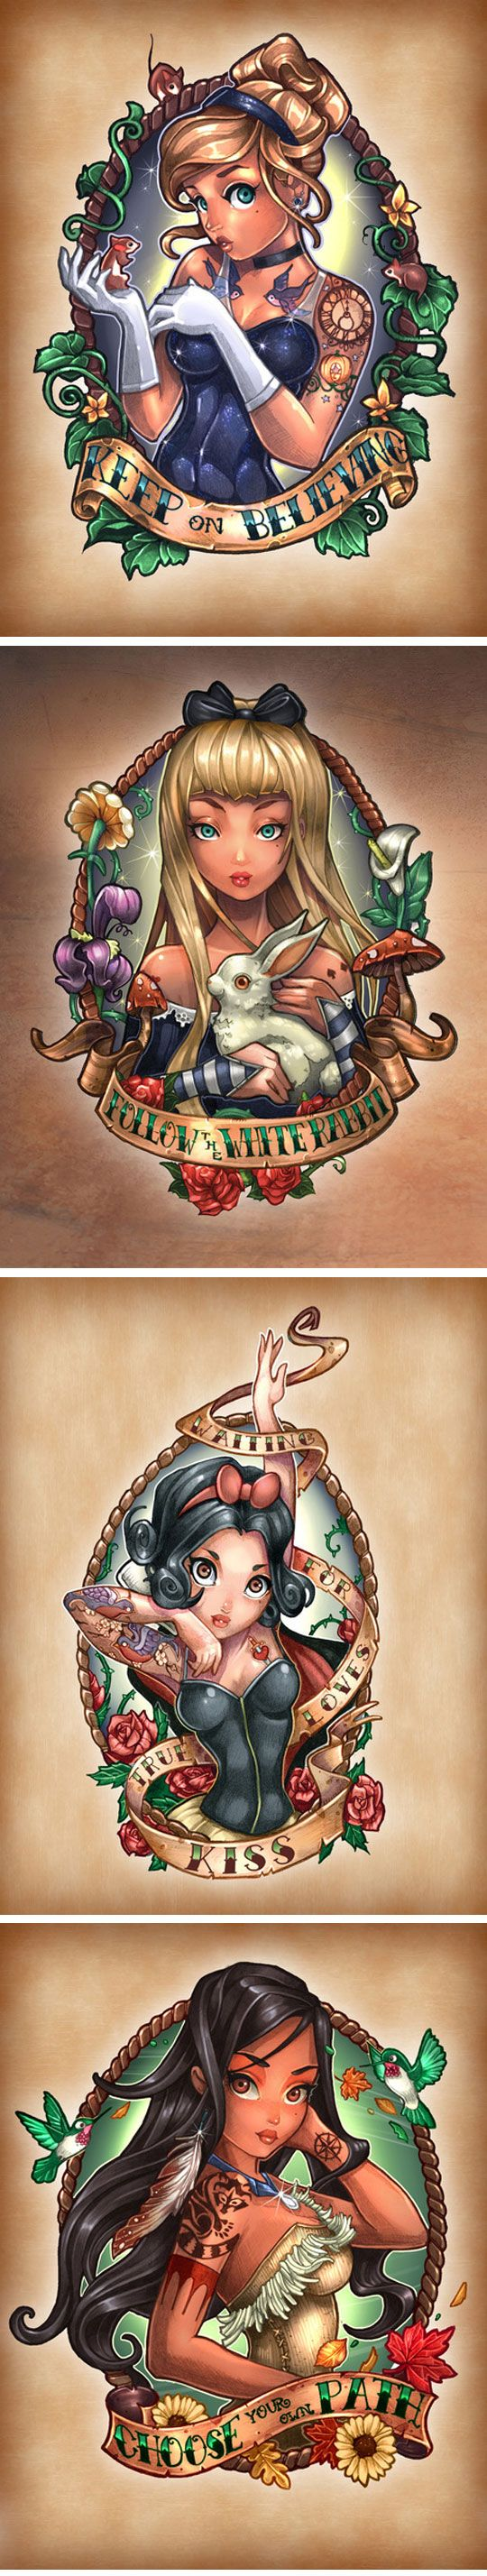 Disney Princesses As Vintage Pin-Up Tattoos  OH MY GOD! Where's Ariel though?